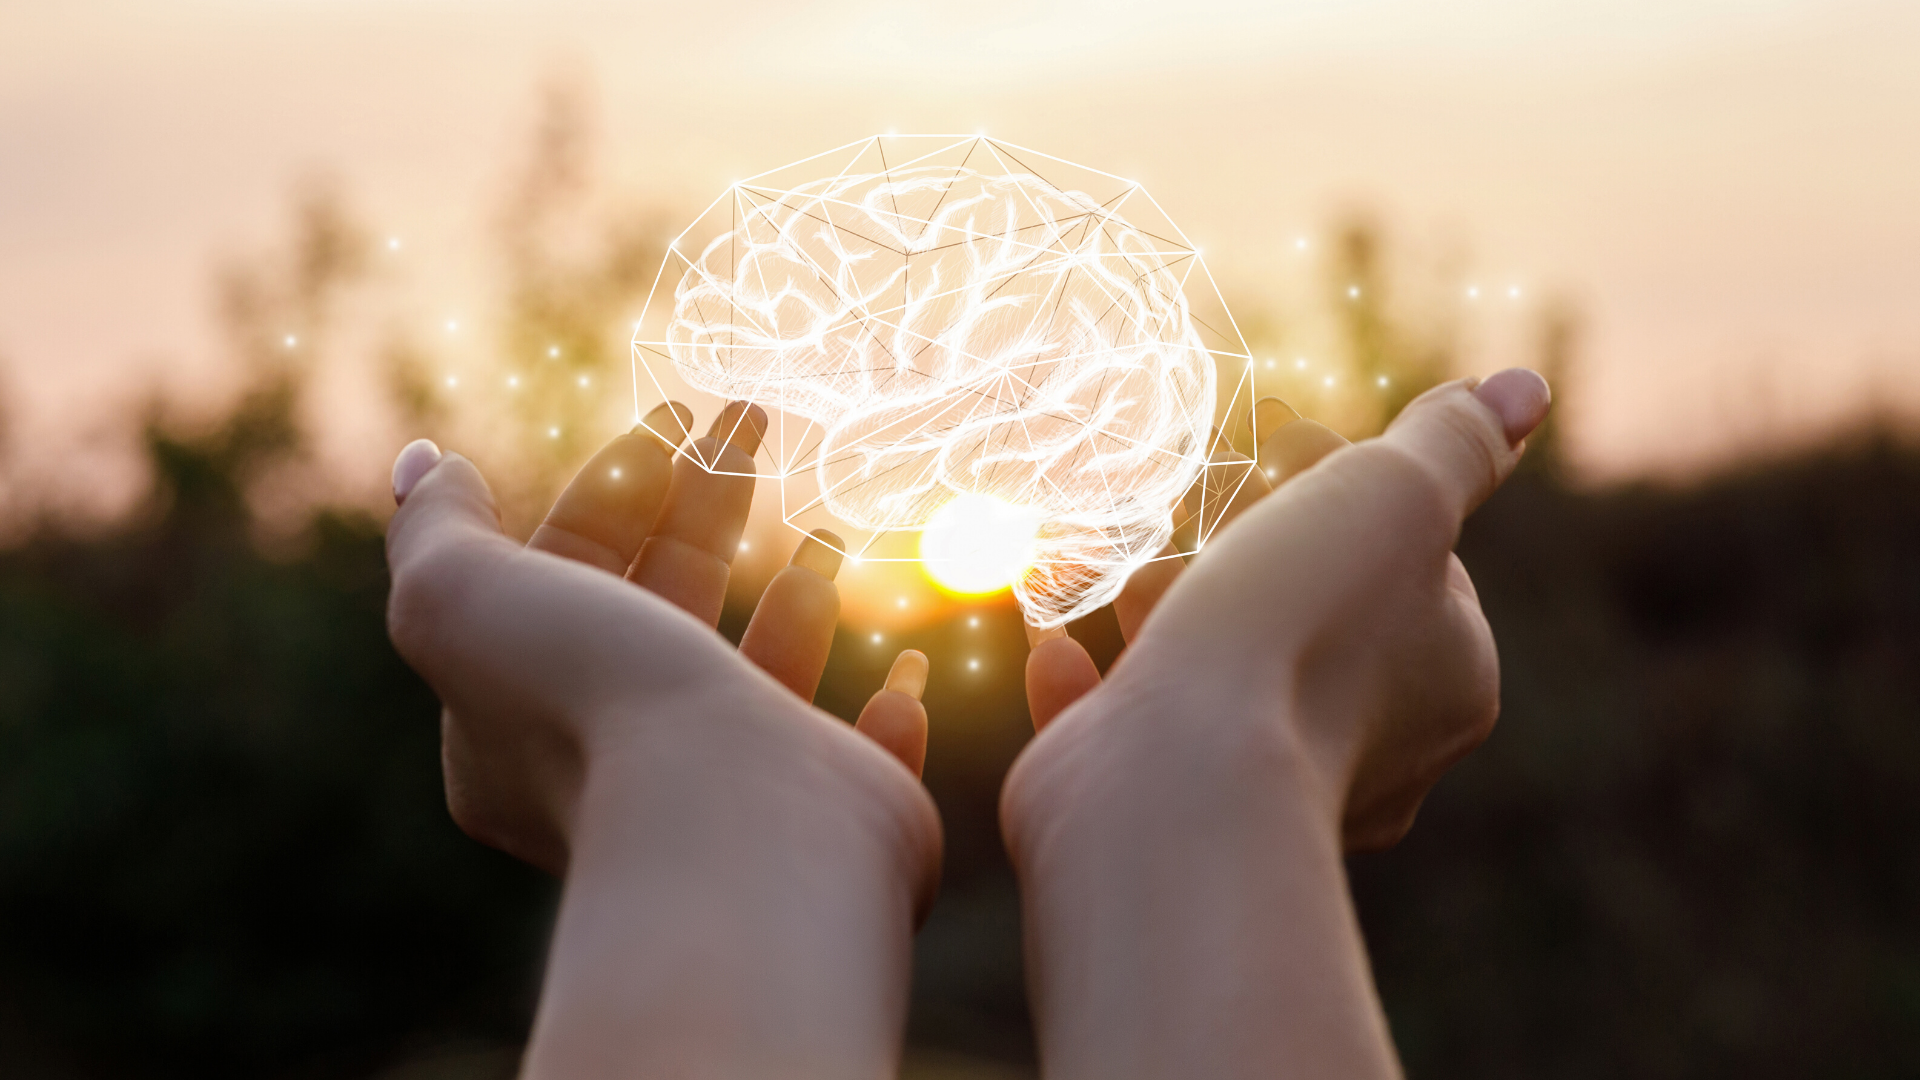 Two hands holding an illustration of a brain illuminated.